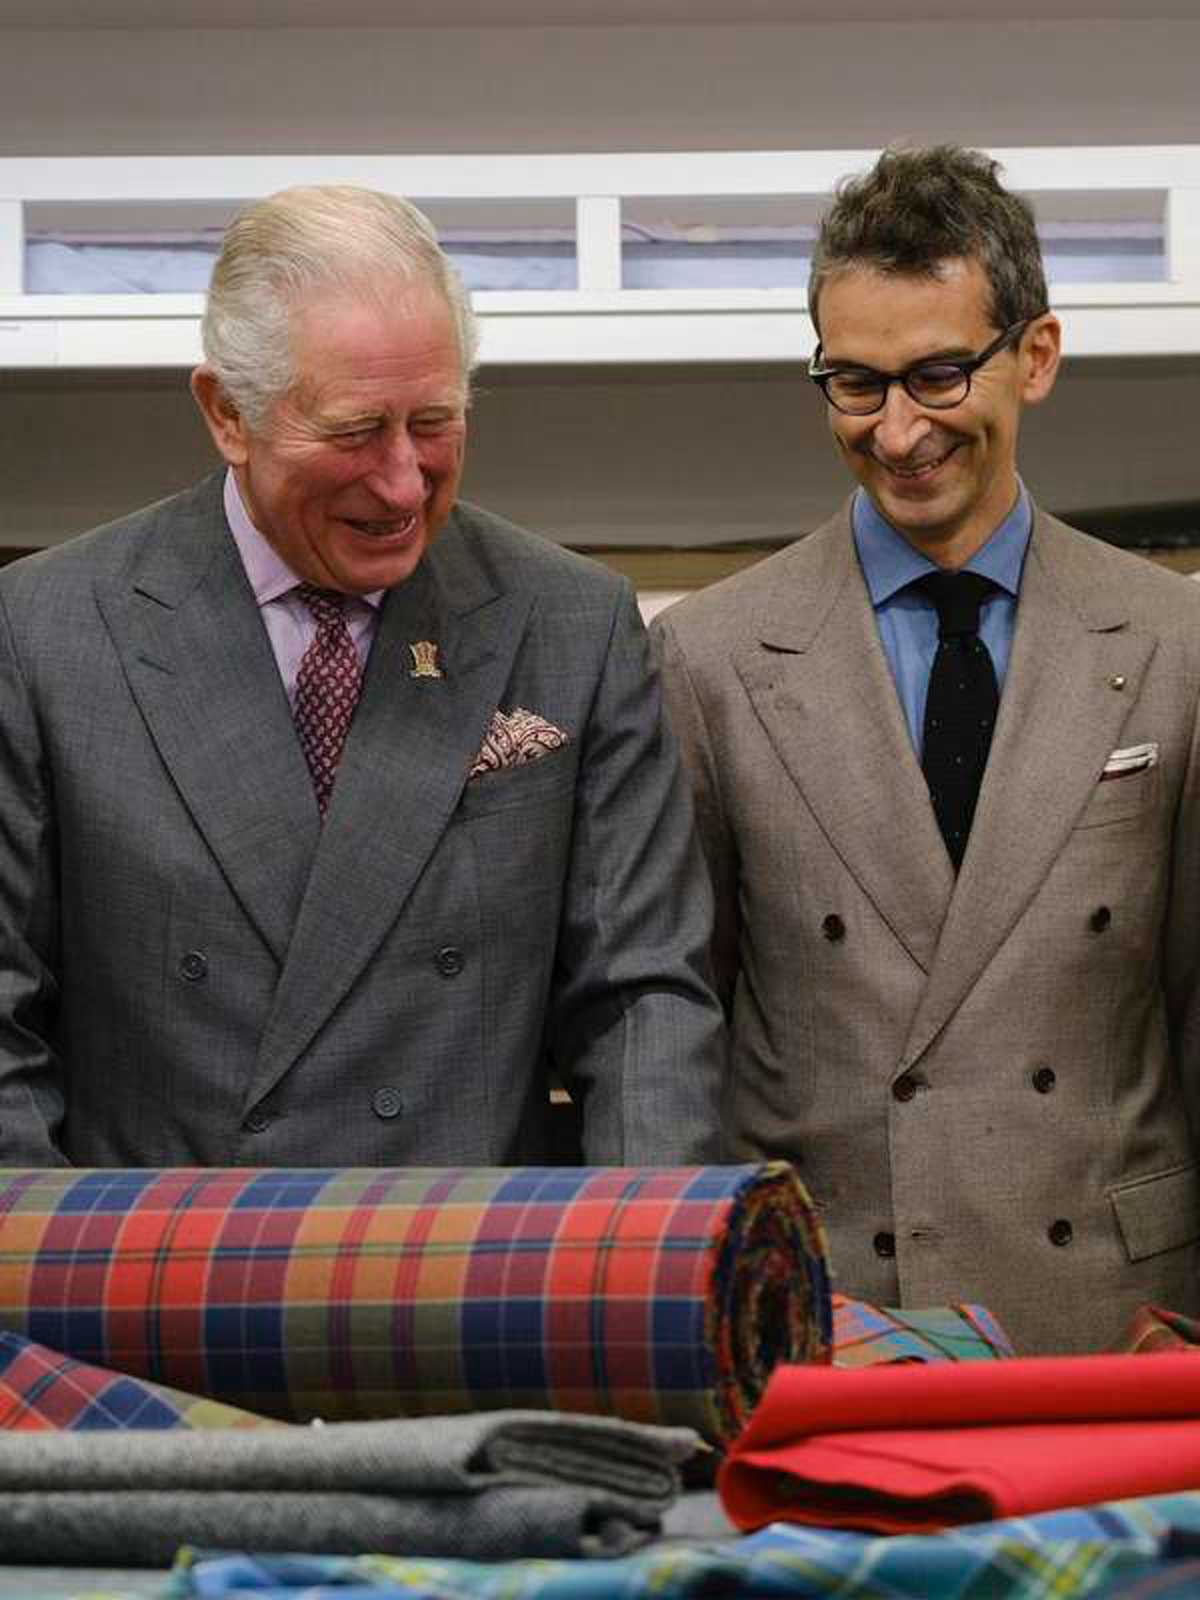 prince-charles-royal-family-sustainable-fashion-modern-artisan-luxiders